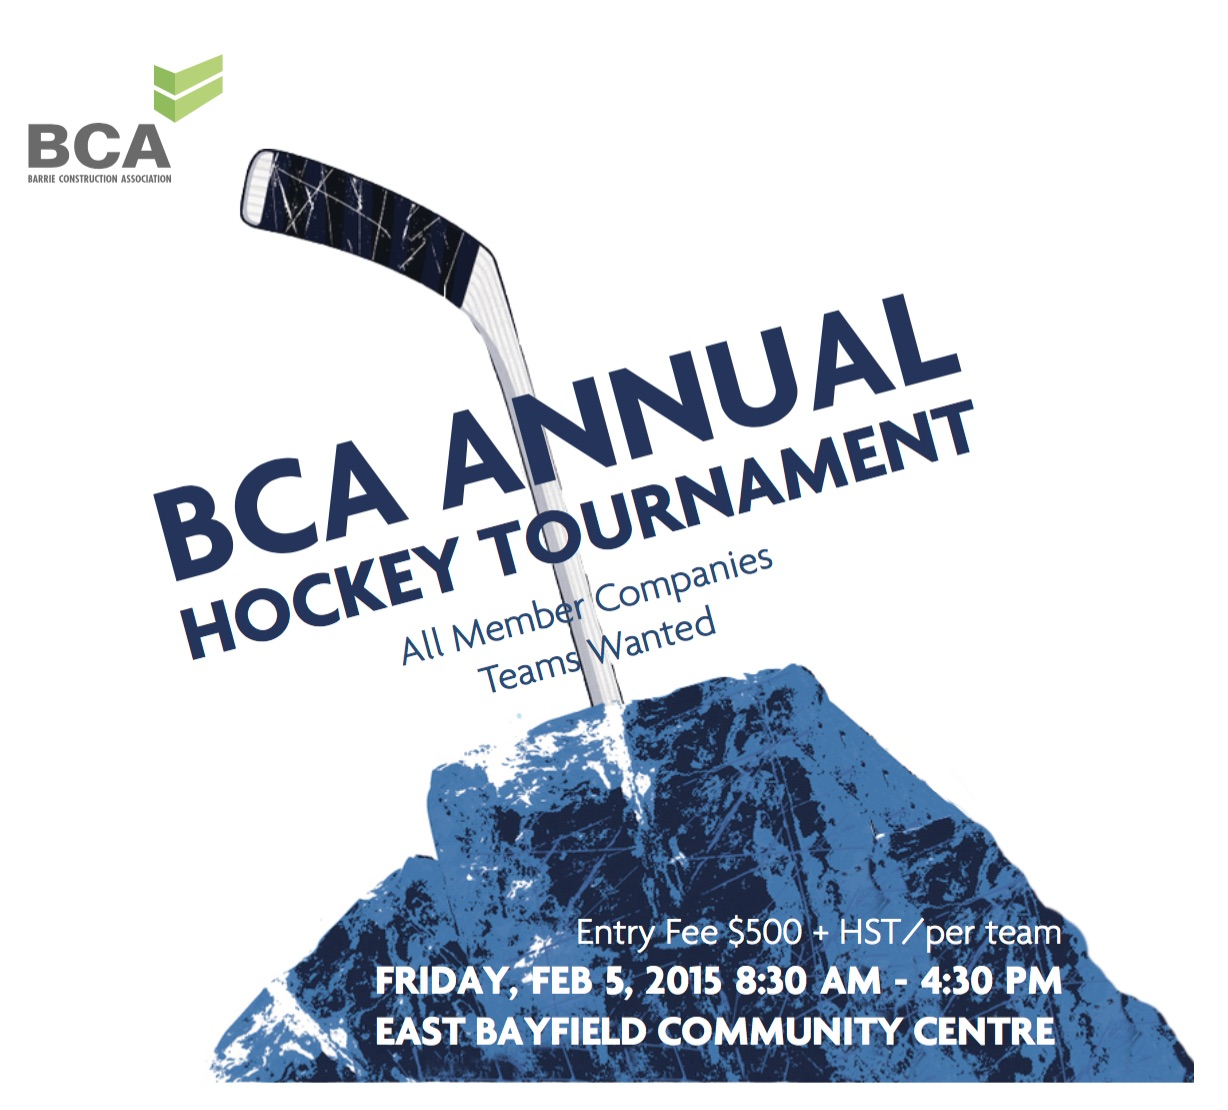 bca hockey